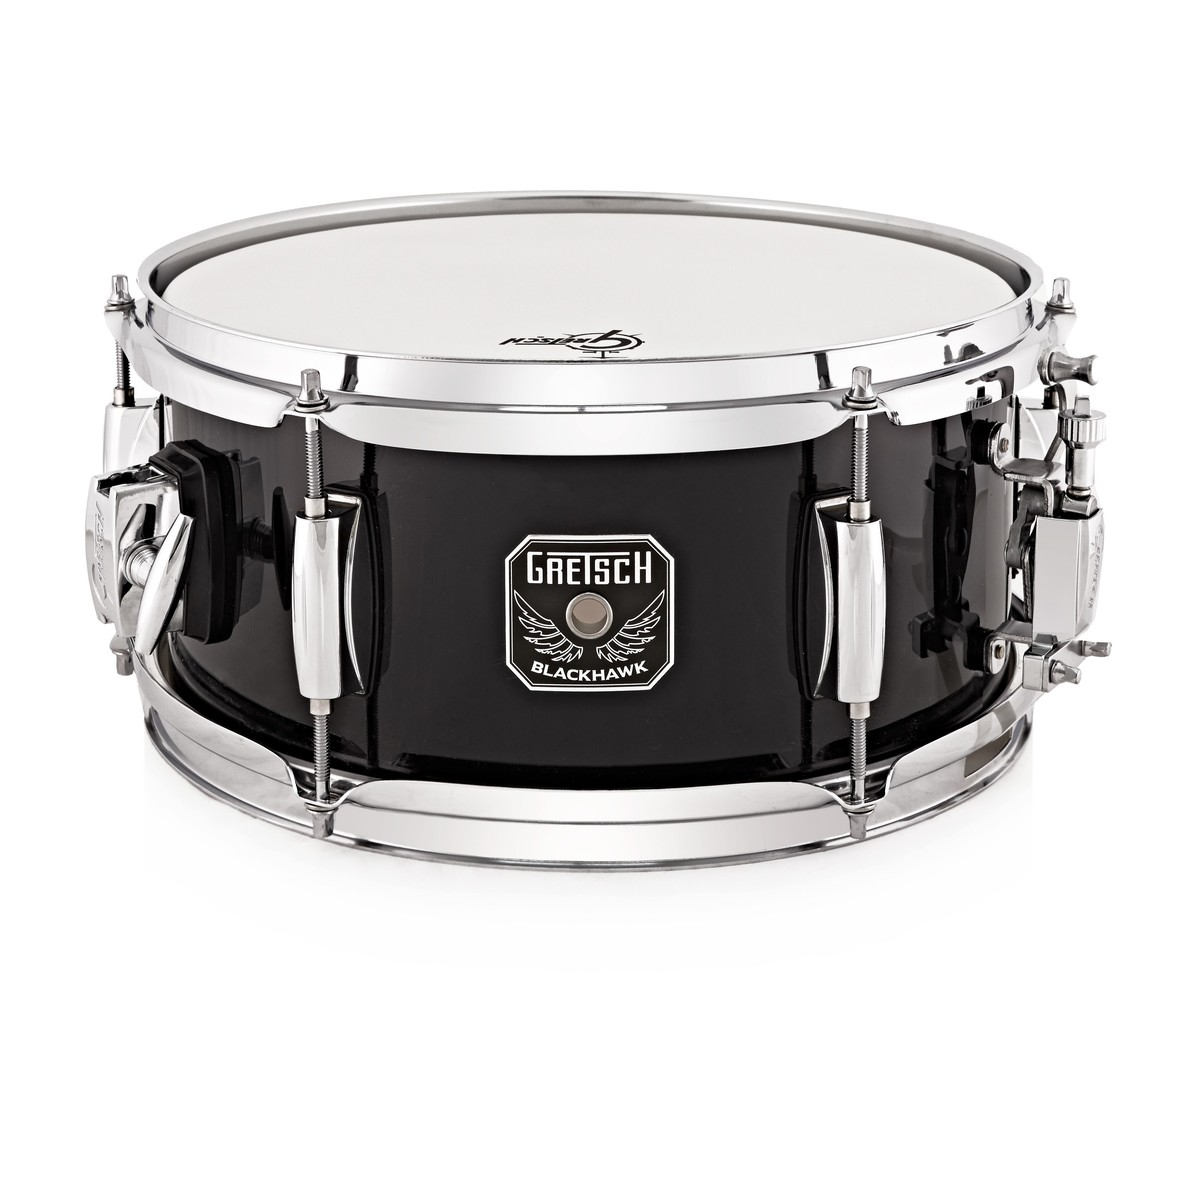 gretsch 39 mighty mini 39 12 39 39 x 5 5 39 39 snare drum at gear4music. Black Bedroom Furniture Sets. Home Design Ideas